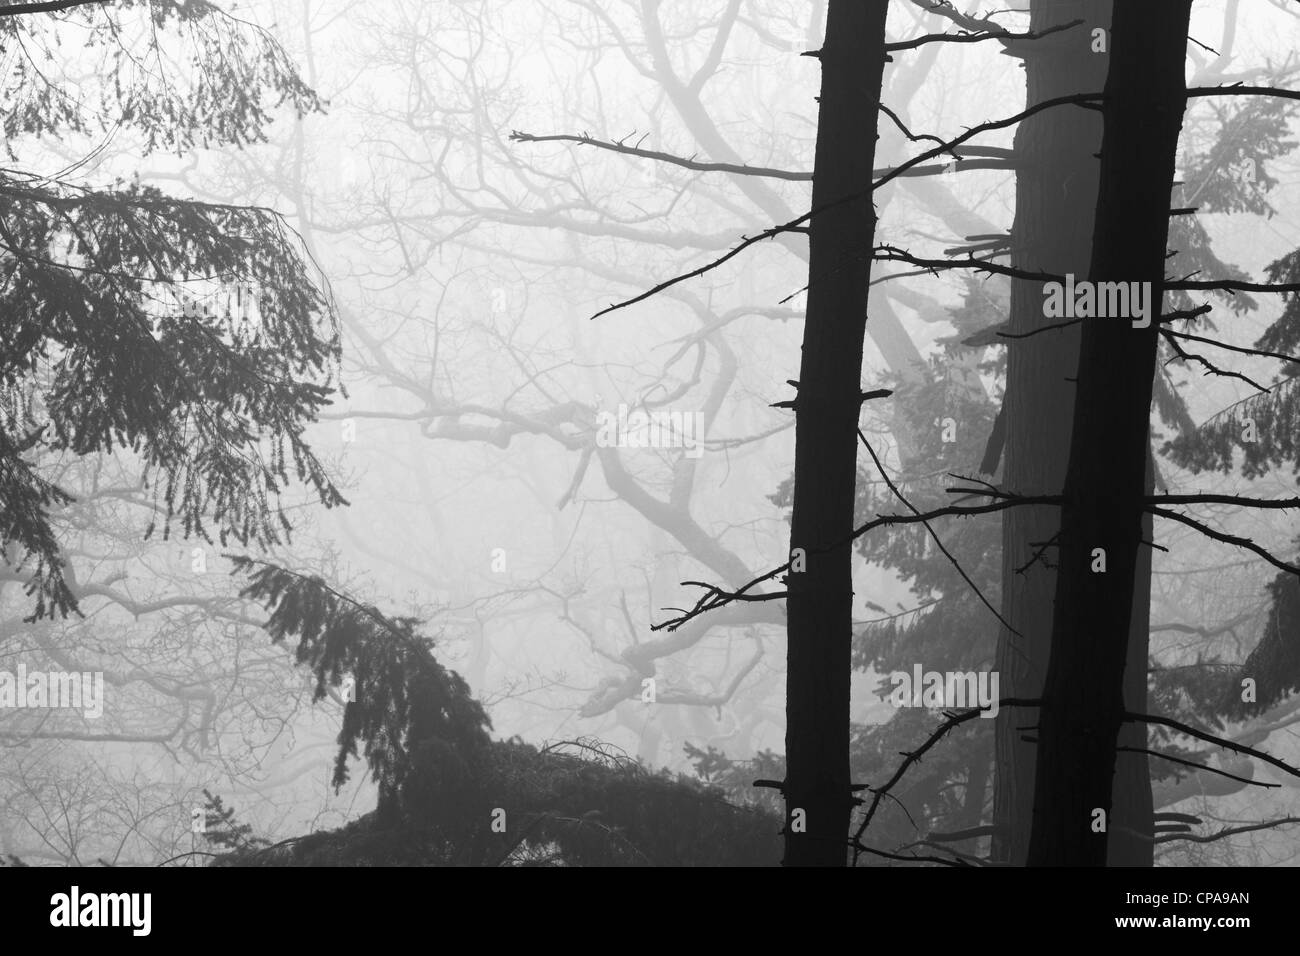 Conifer forest in mist, England, UK - Stock Image